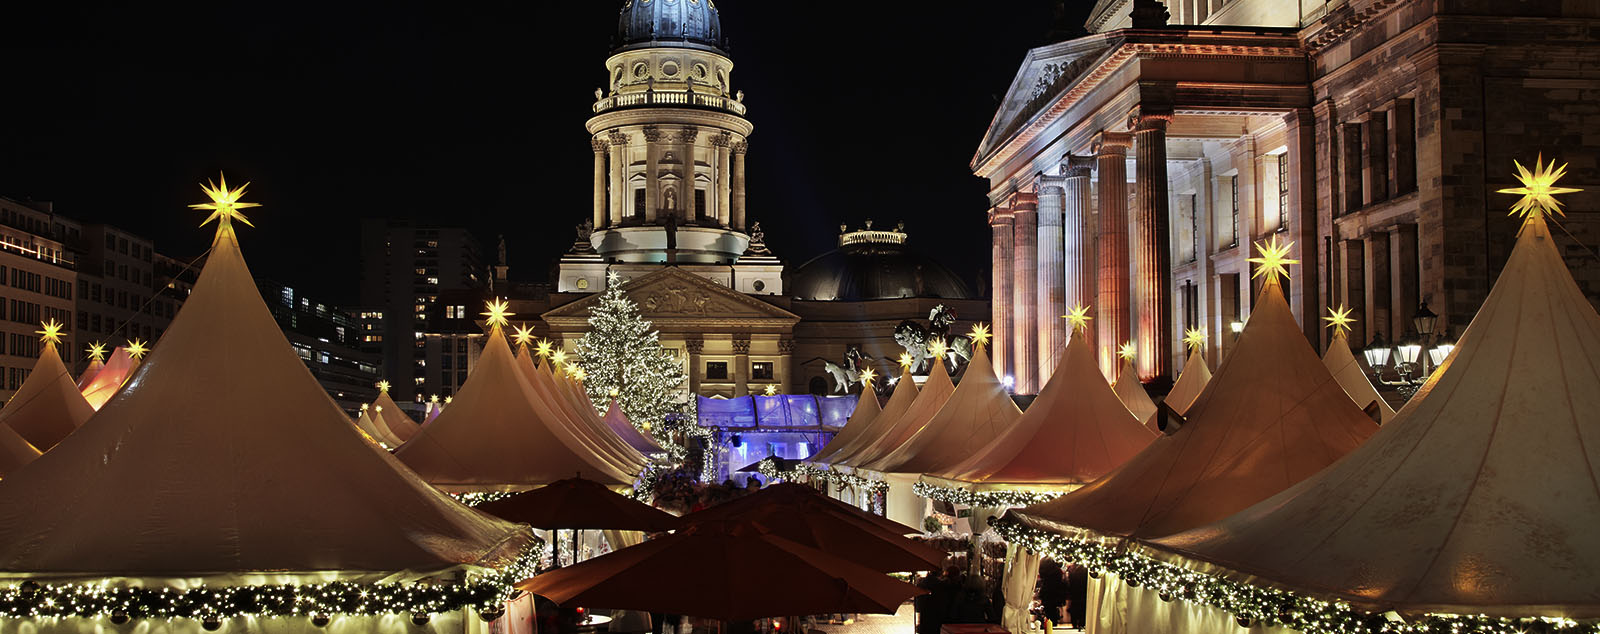 The tops of market stalls adorned with twinkling fairy lights